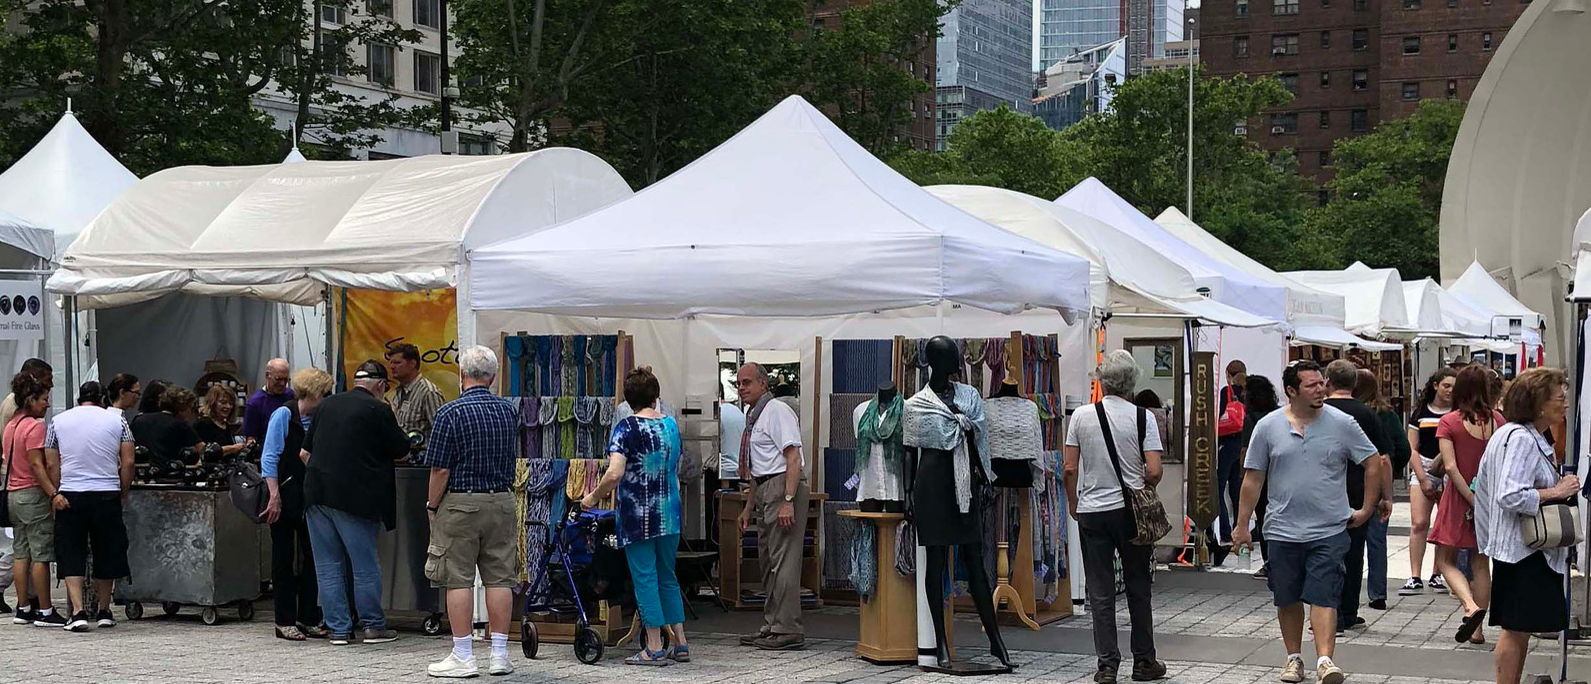 Guests browse vendor stalls in Damrosch Park for CraftNewYork